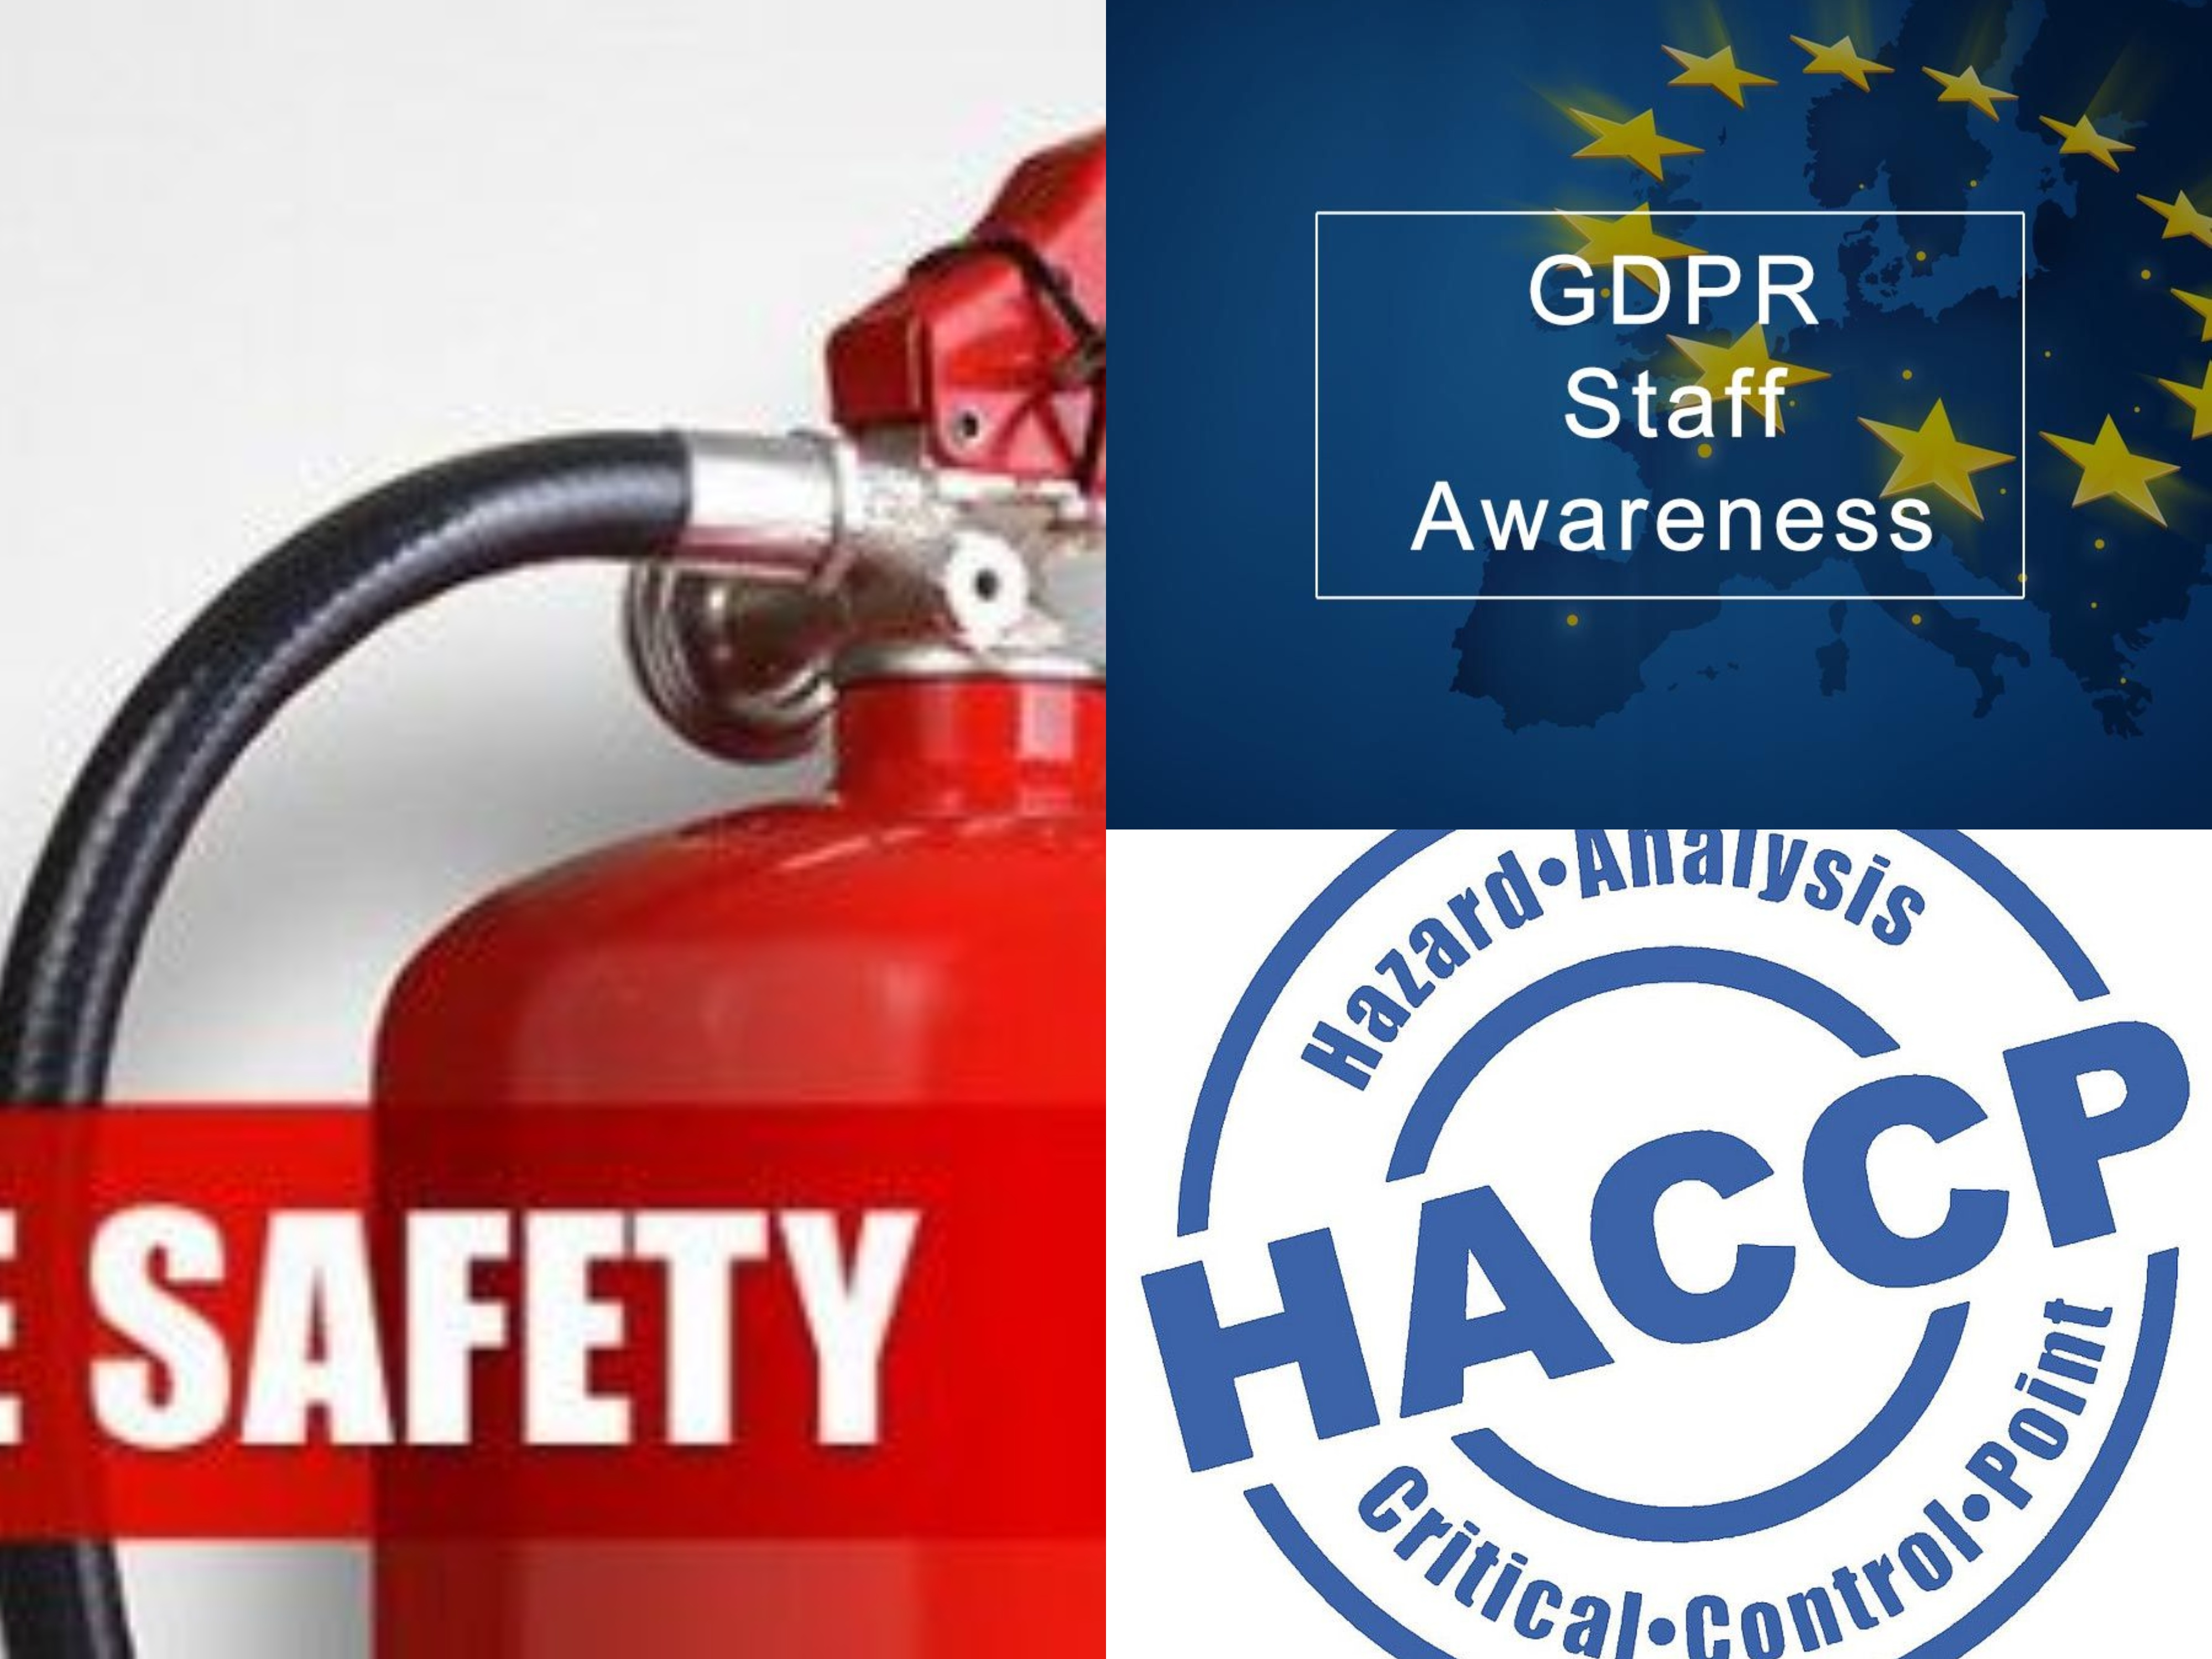 Mandate HACCP, GDPR and Fire Safety